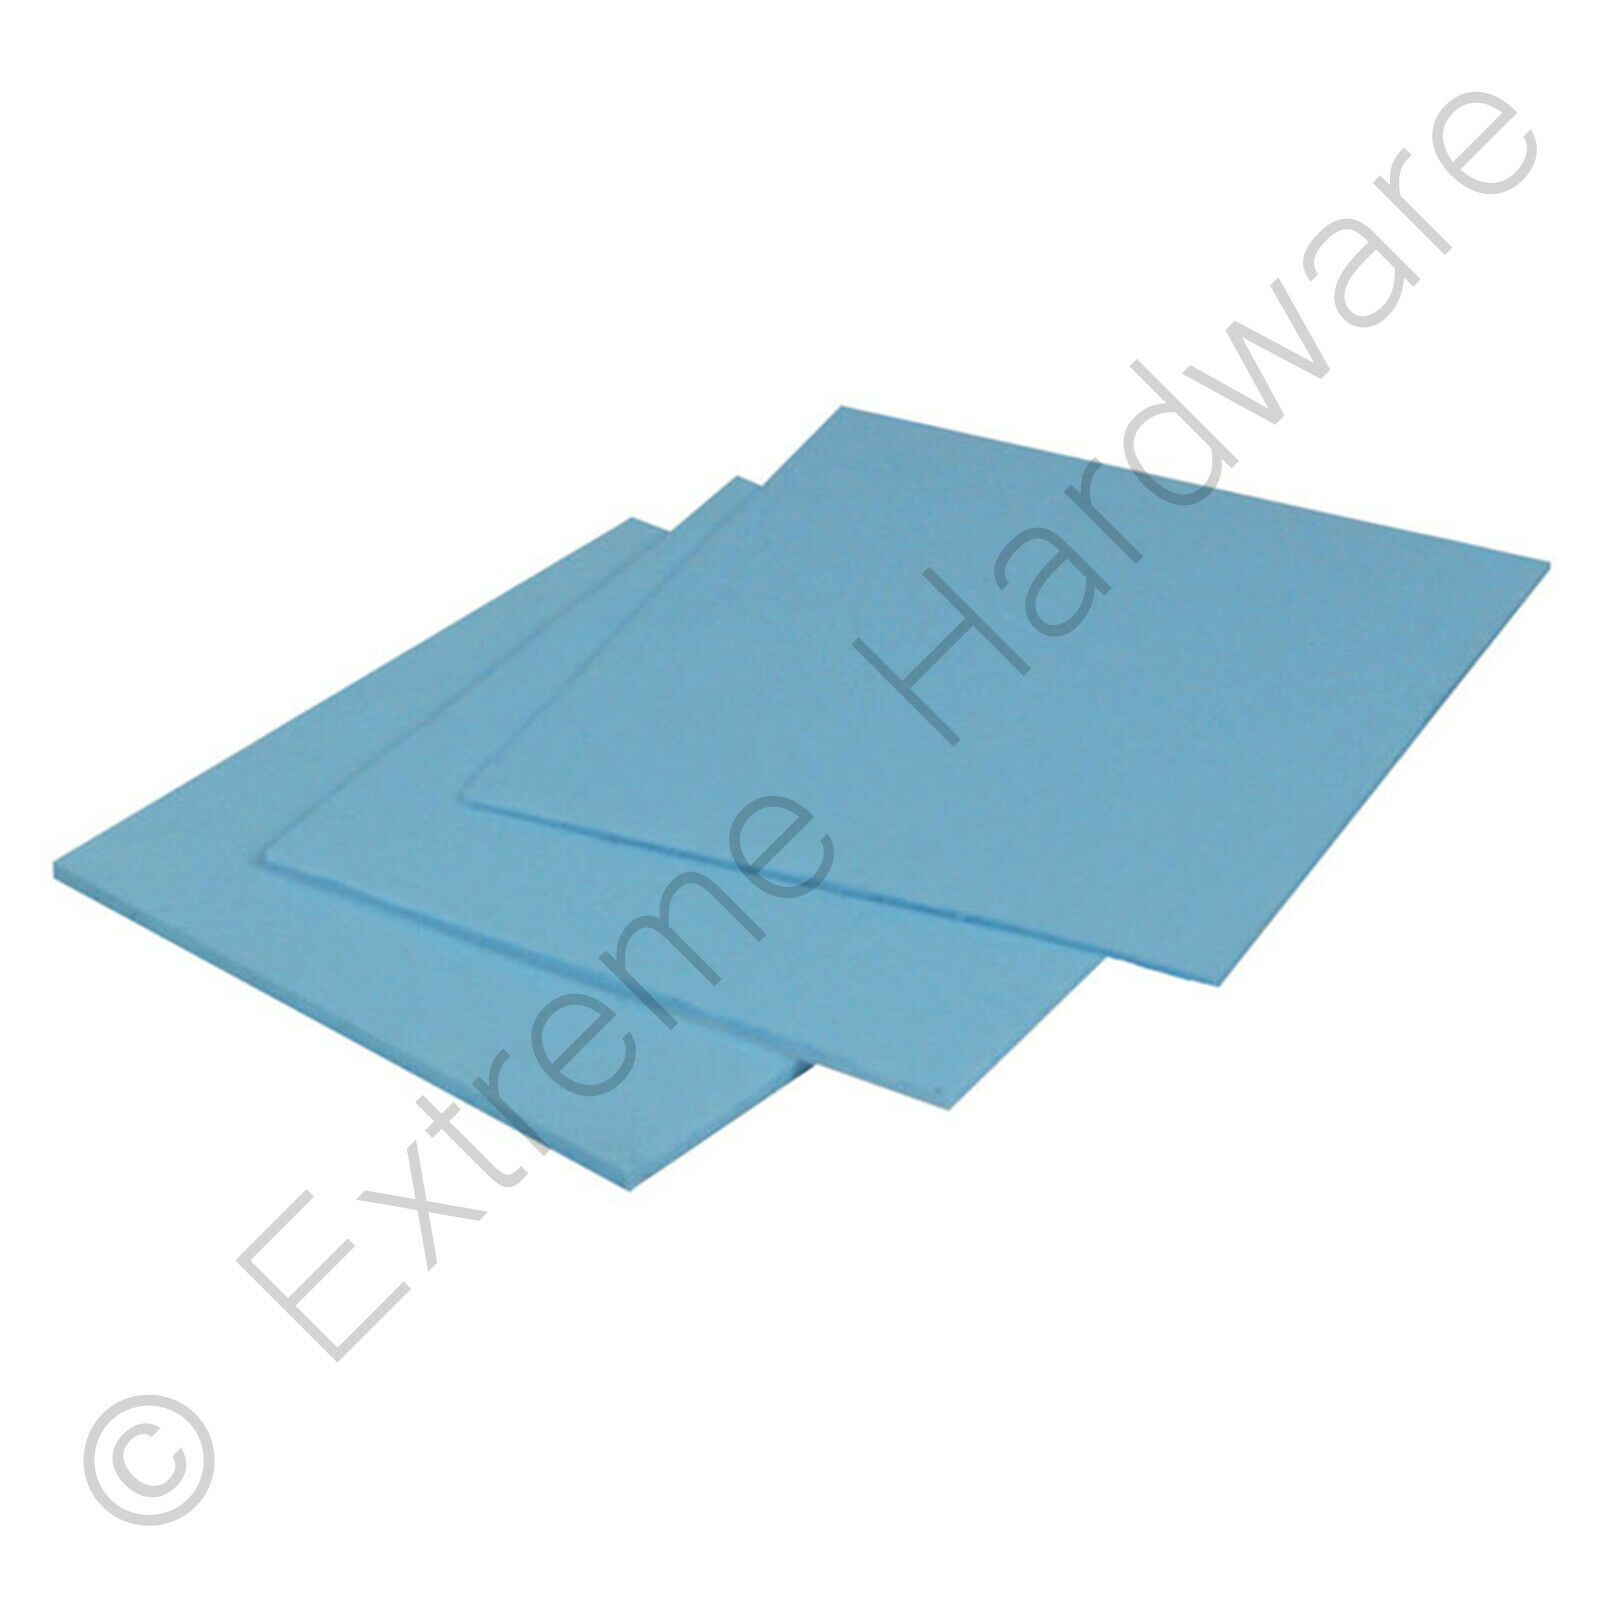 Arctic Cooling Thermal Pad 6 W/mK 50 x 50 x 1mm for Intel & AMD CPUs No Silver